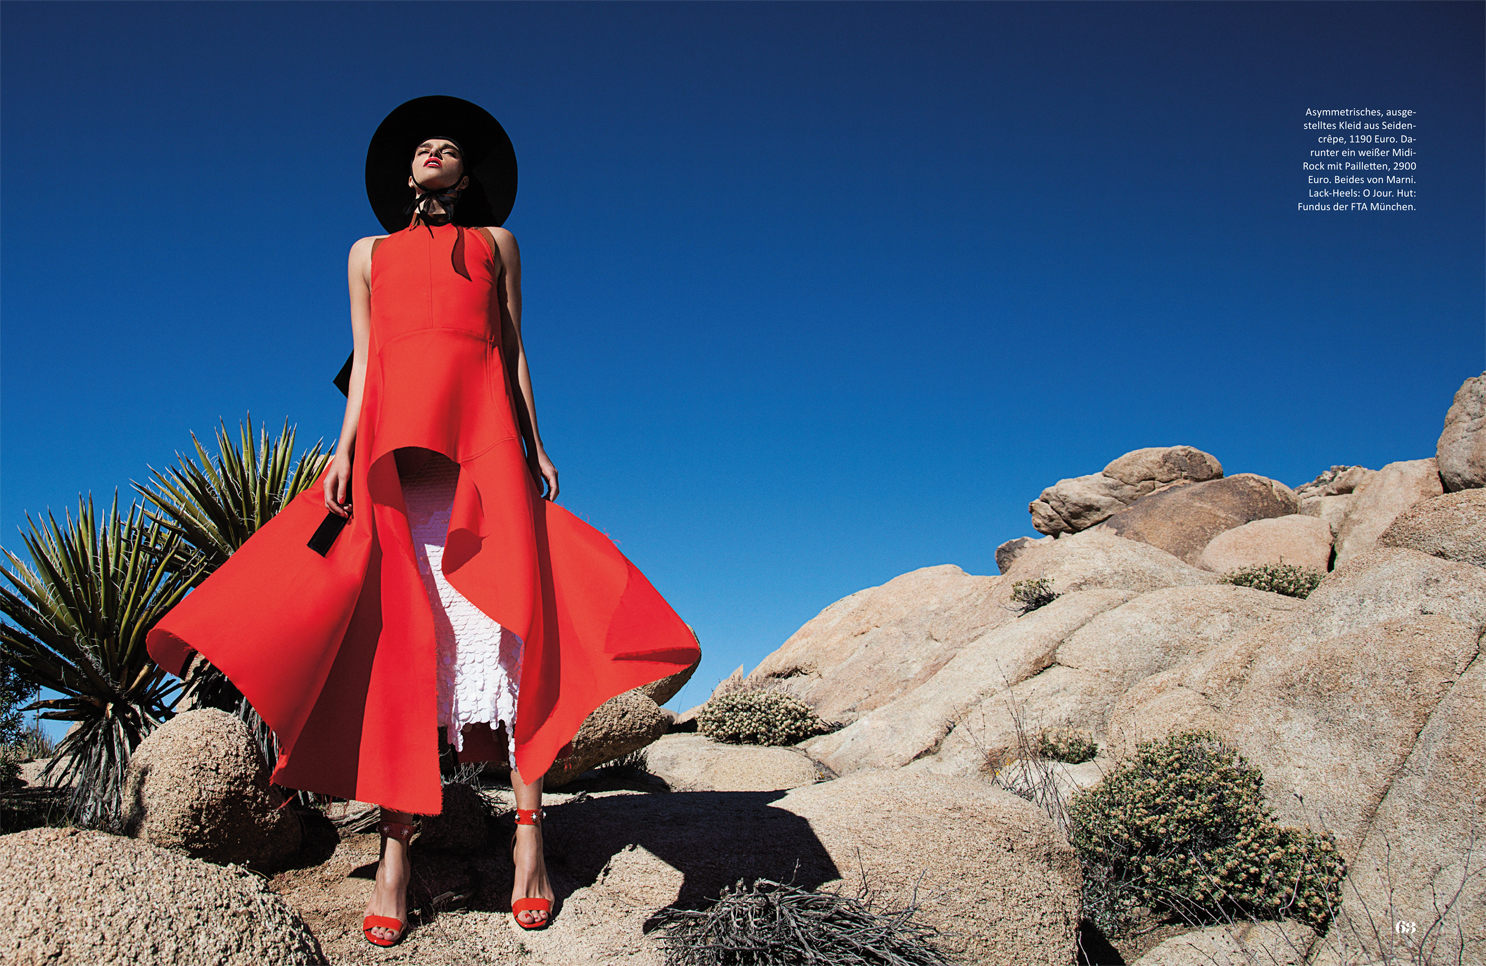 high fashion dress hat highheels rocks posing desert